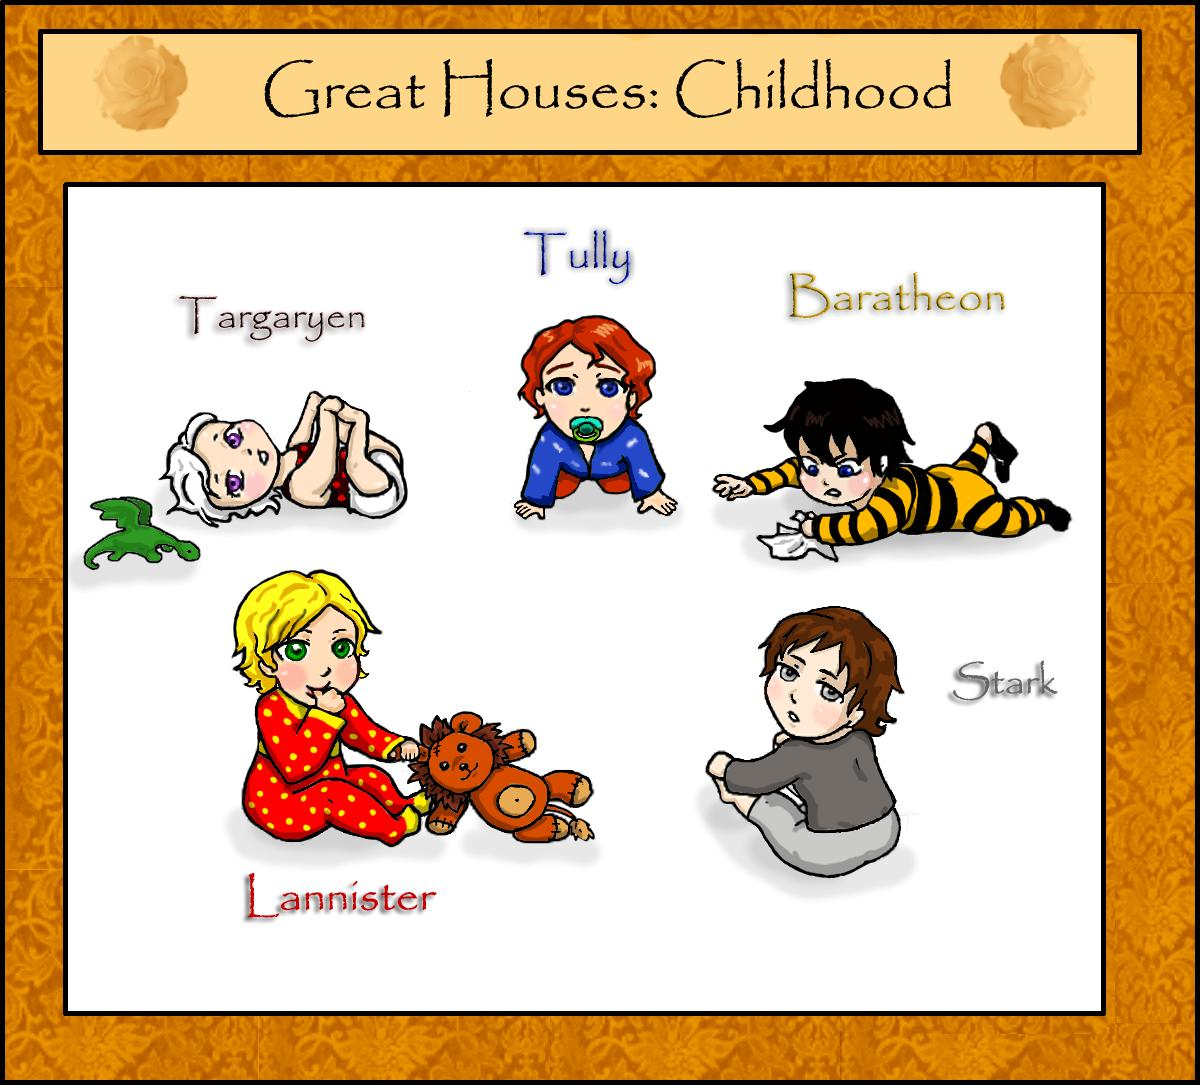 ASoIaF  Great Houses: Childhood by Arashell on DeviantArt